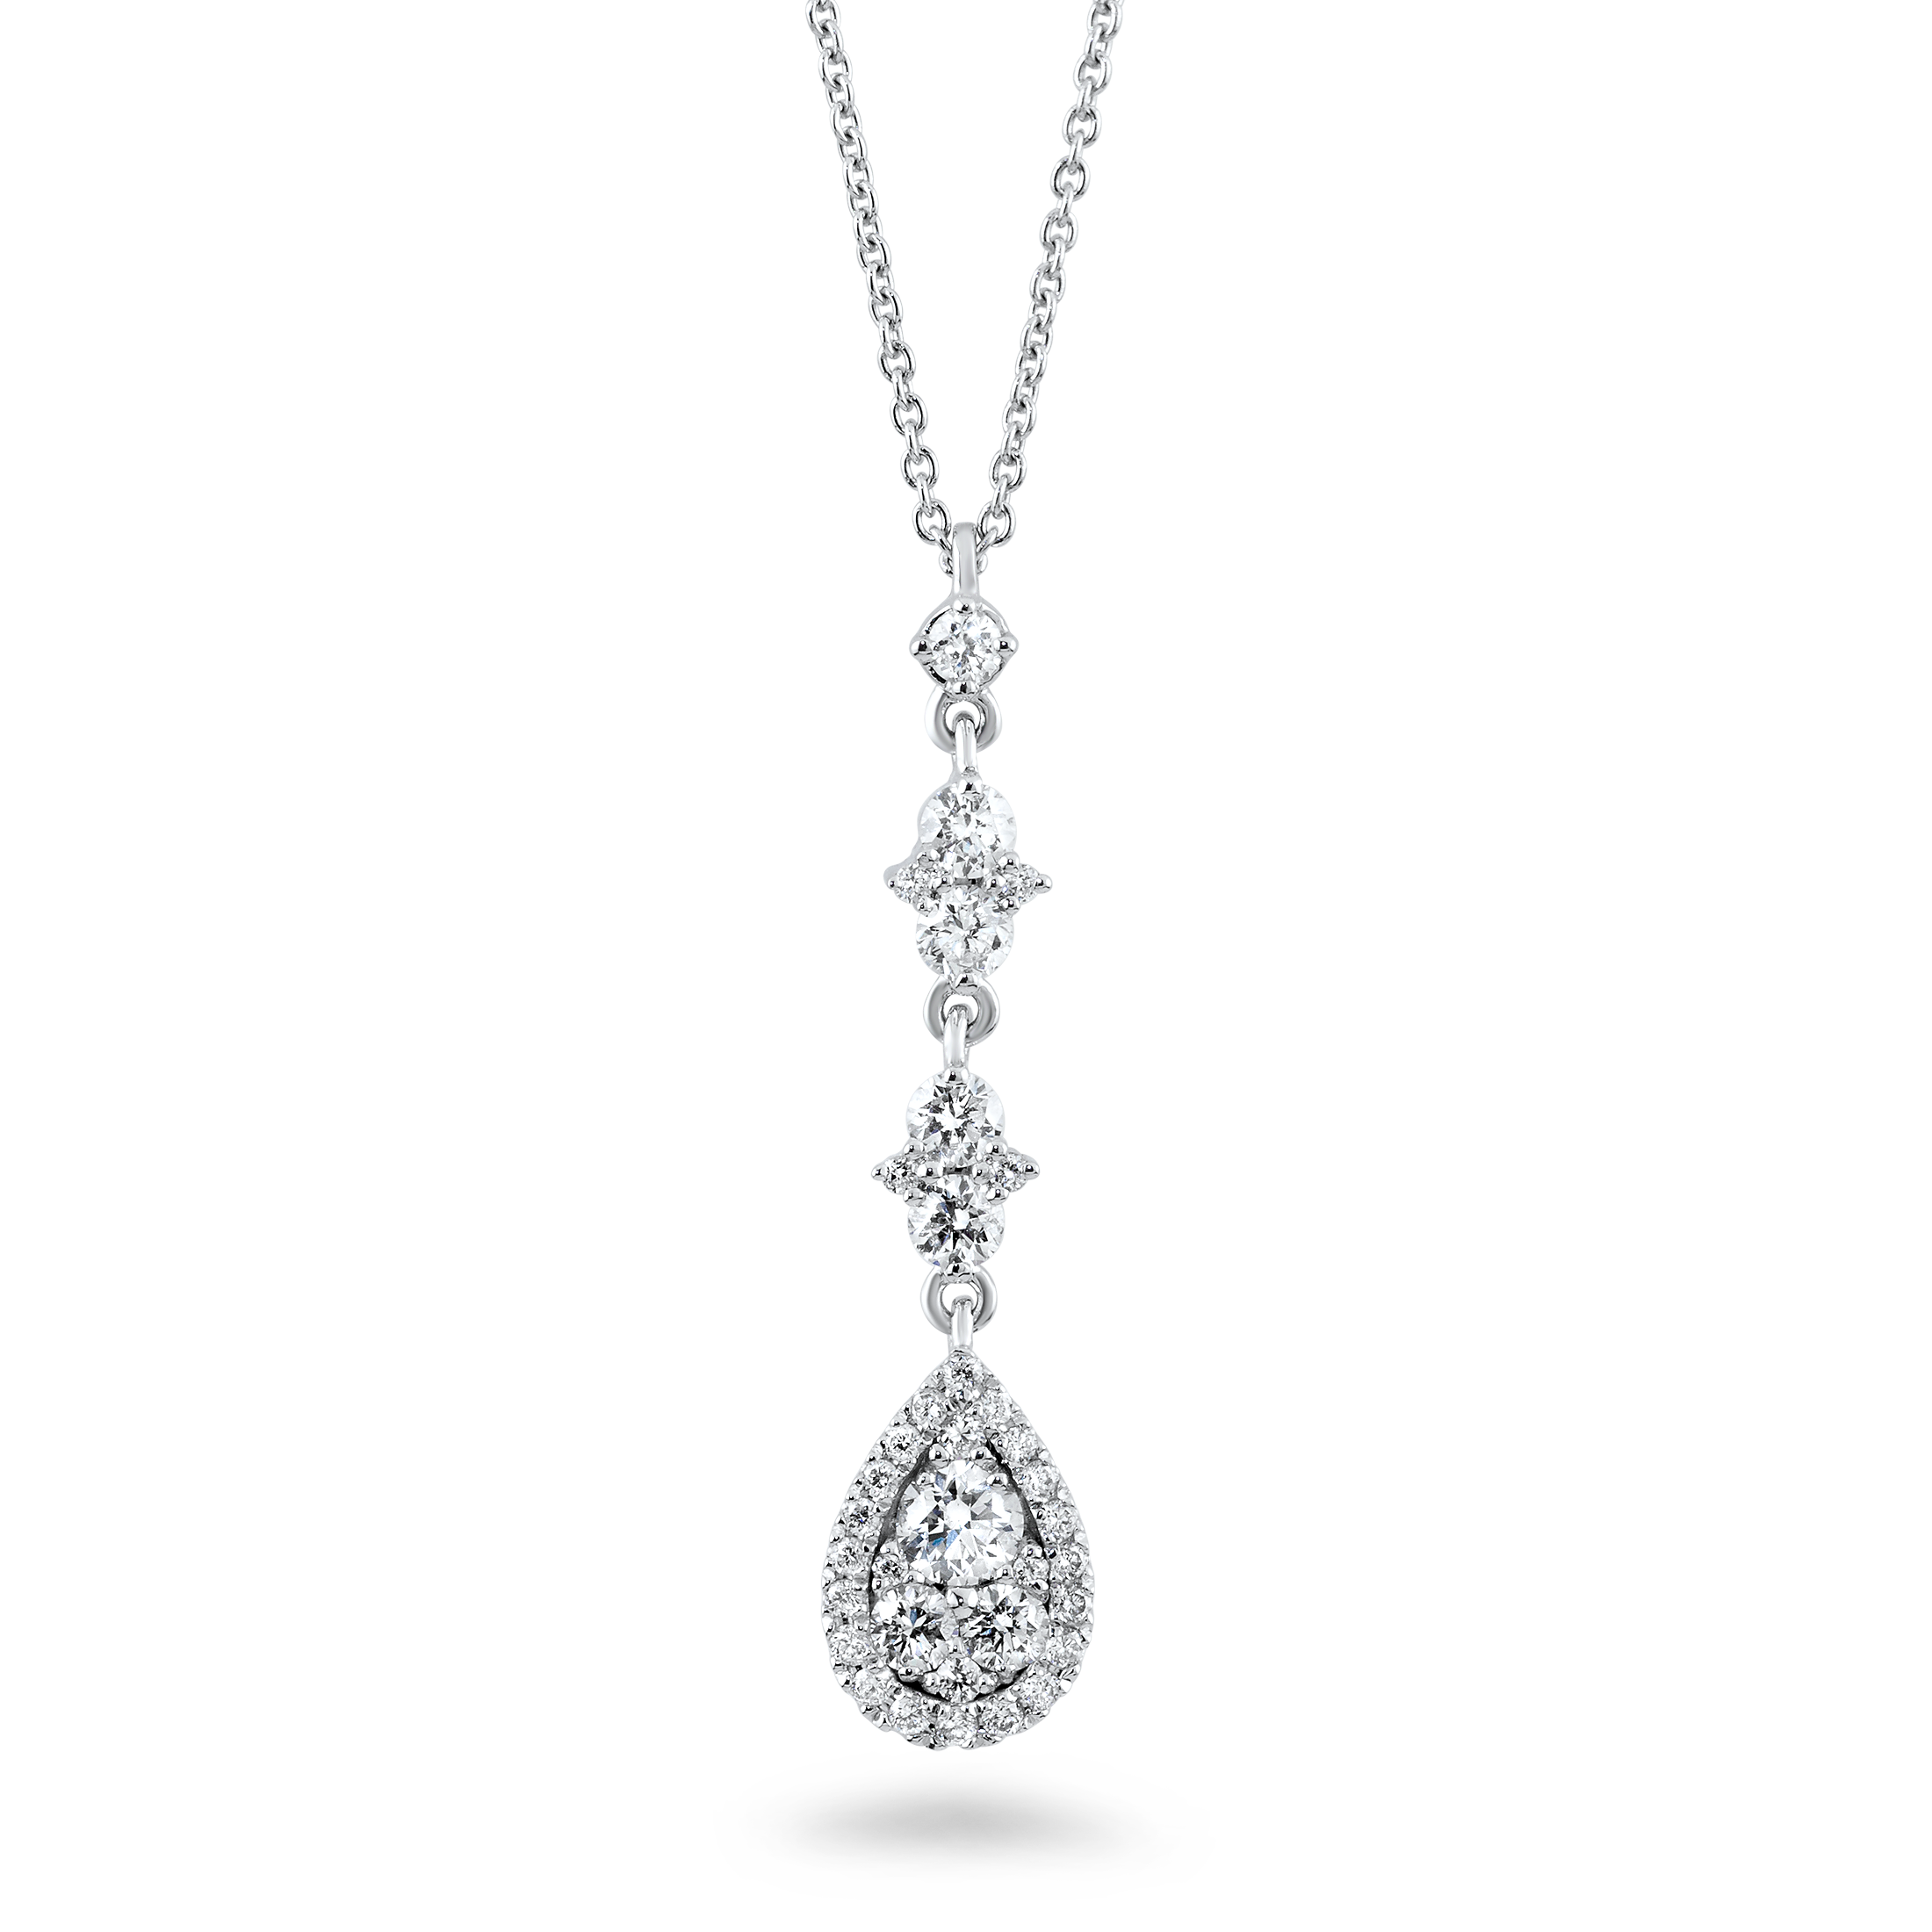 Diamond Necklace PNG - 74794